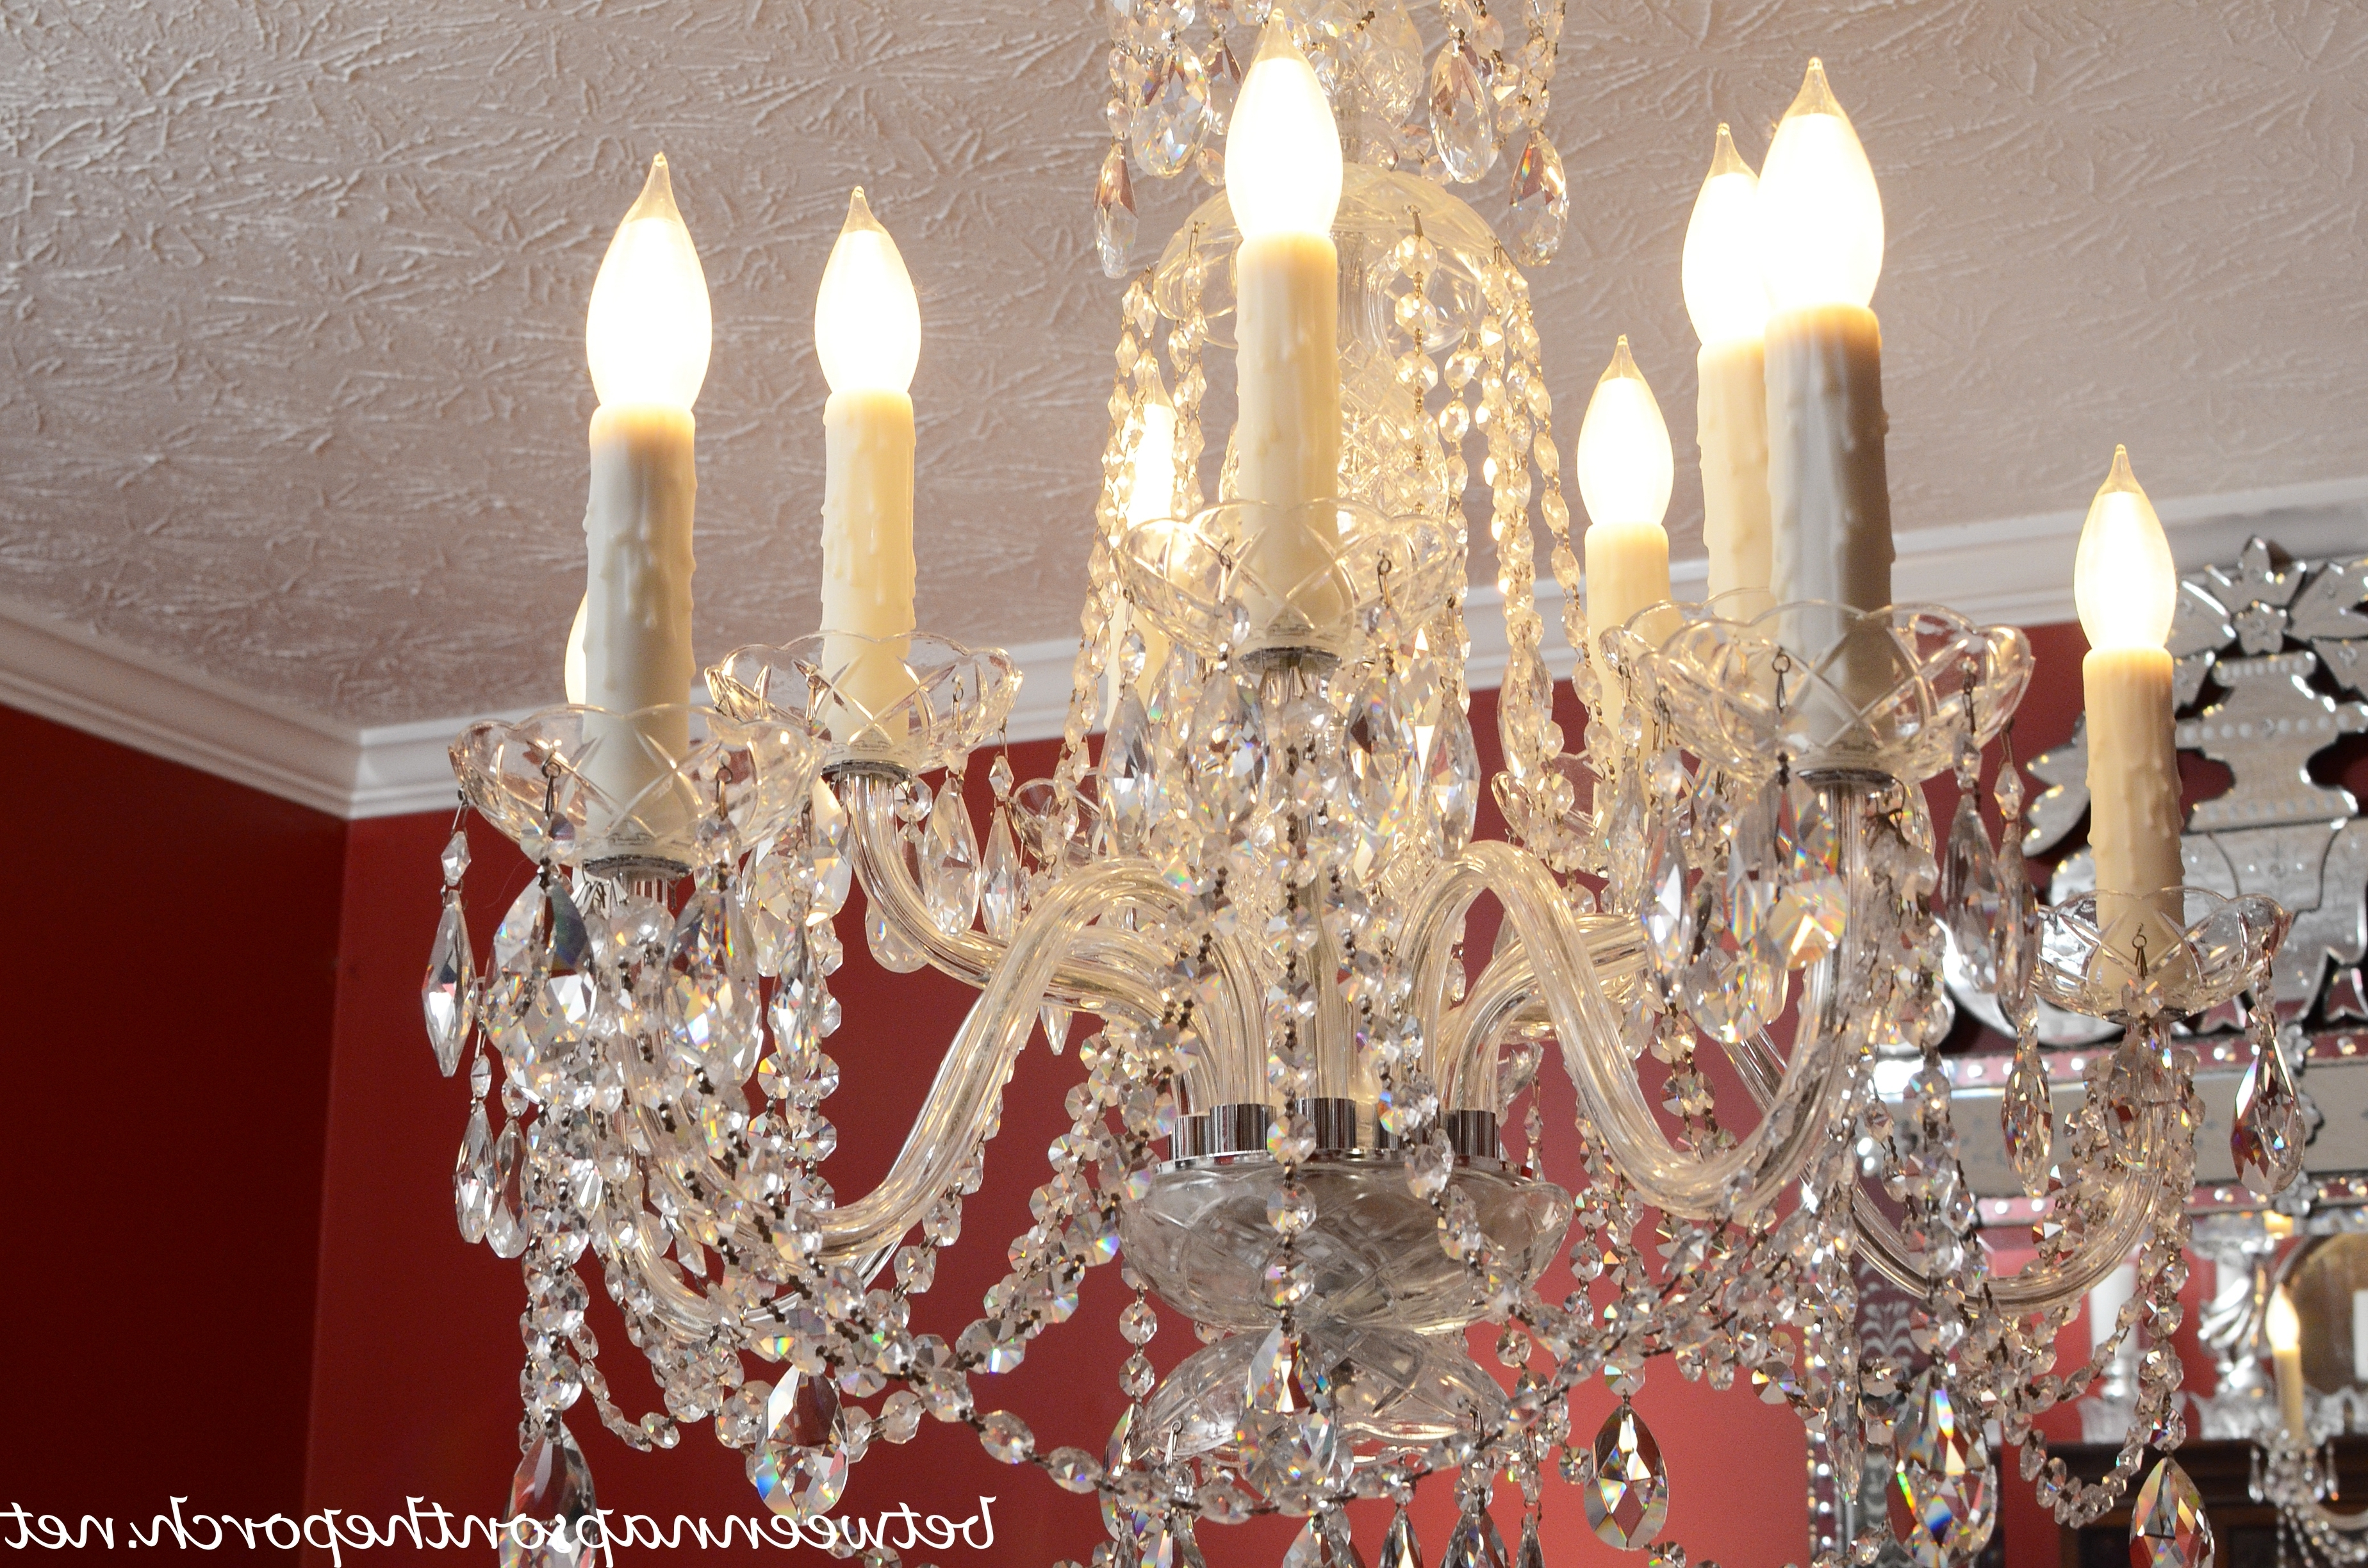 Metal Ball Chandeliers Regarding Favorite Chandeliers Design : Wonderful Candle Style Chandelier Small (View 13 of 15)